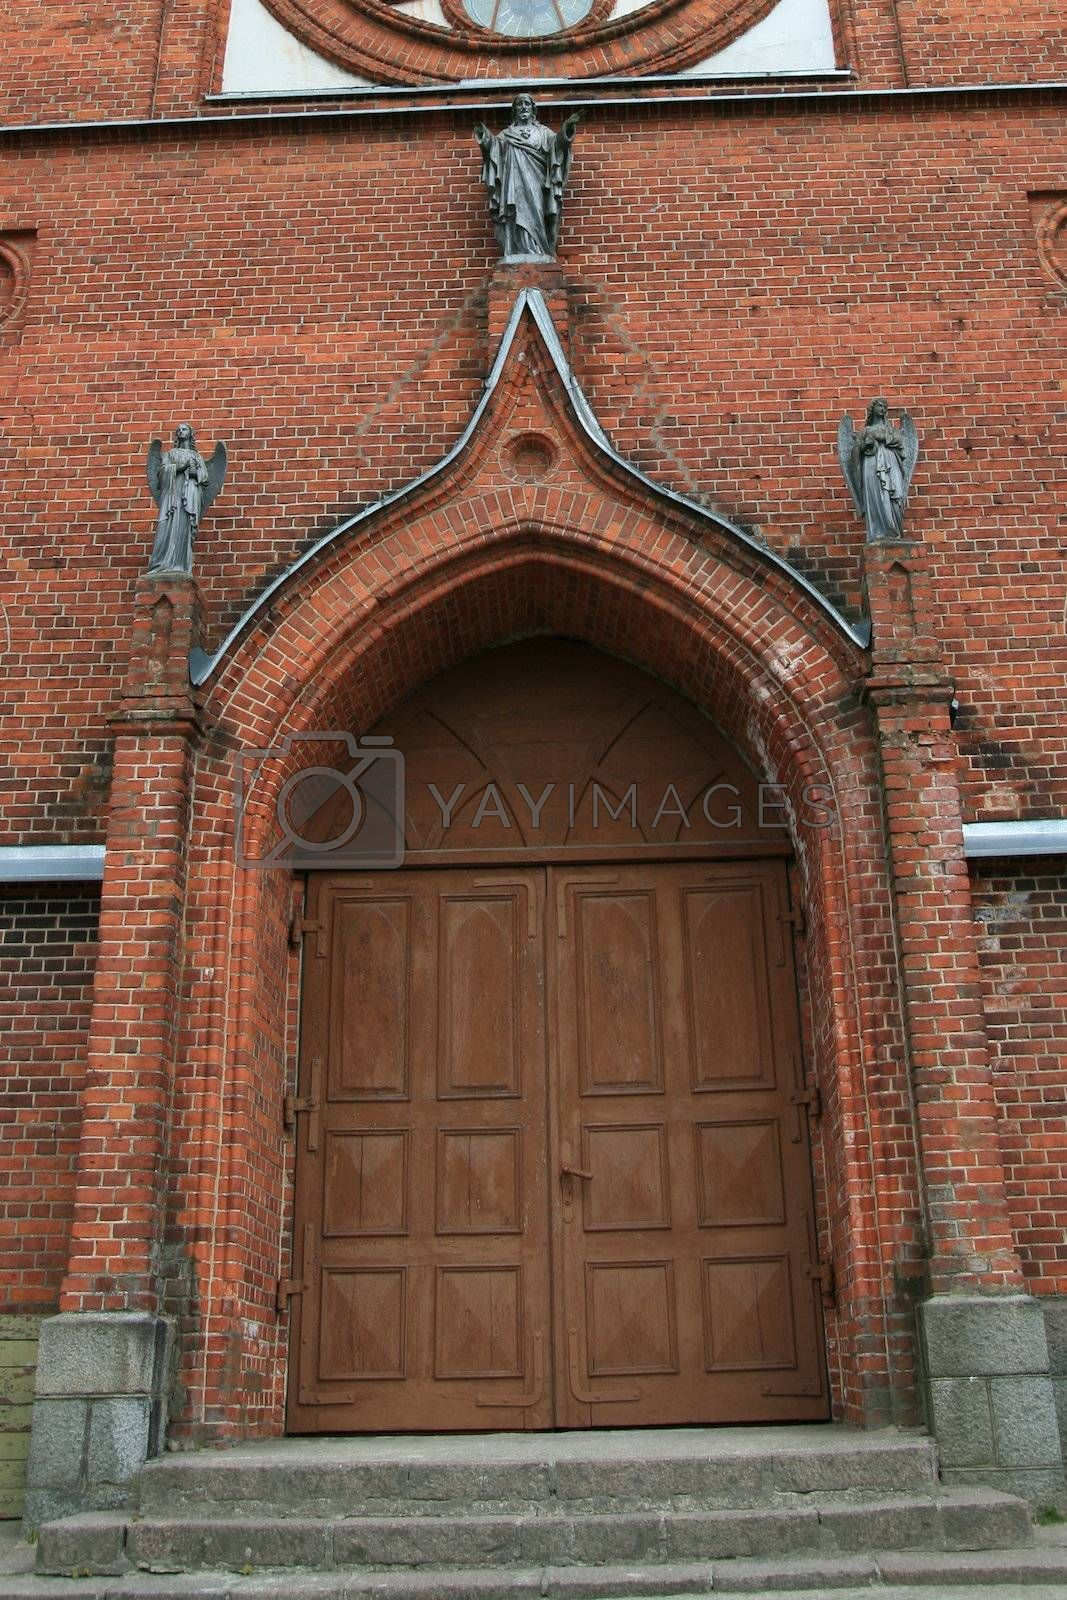 Early 19th century gothic style church door